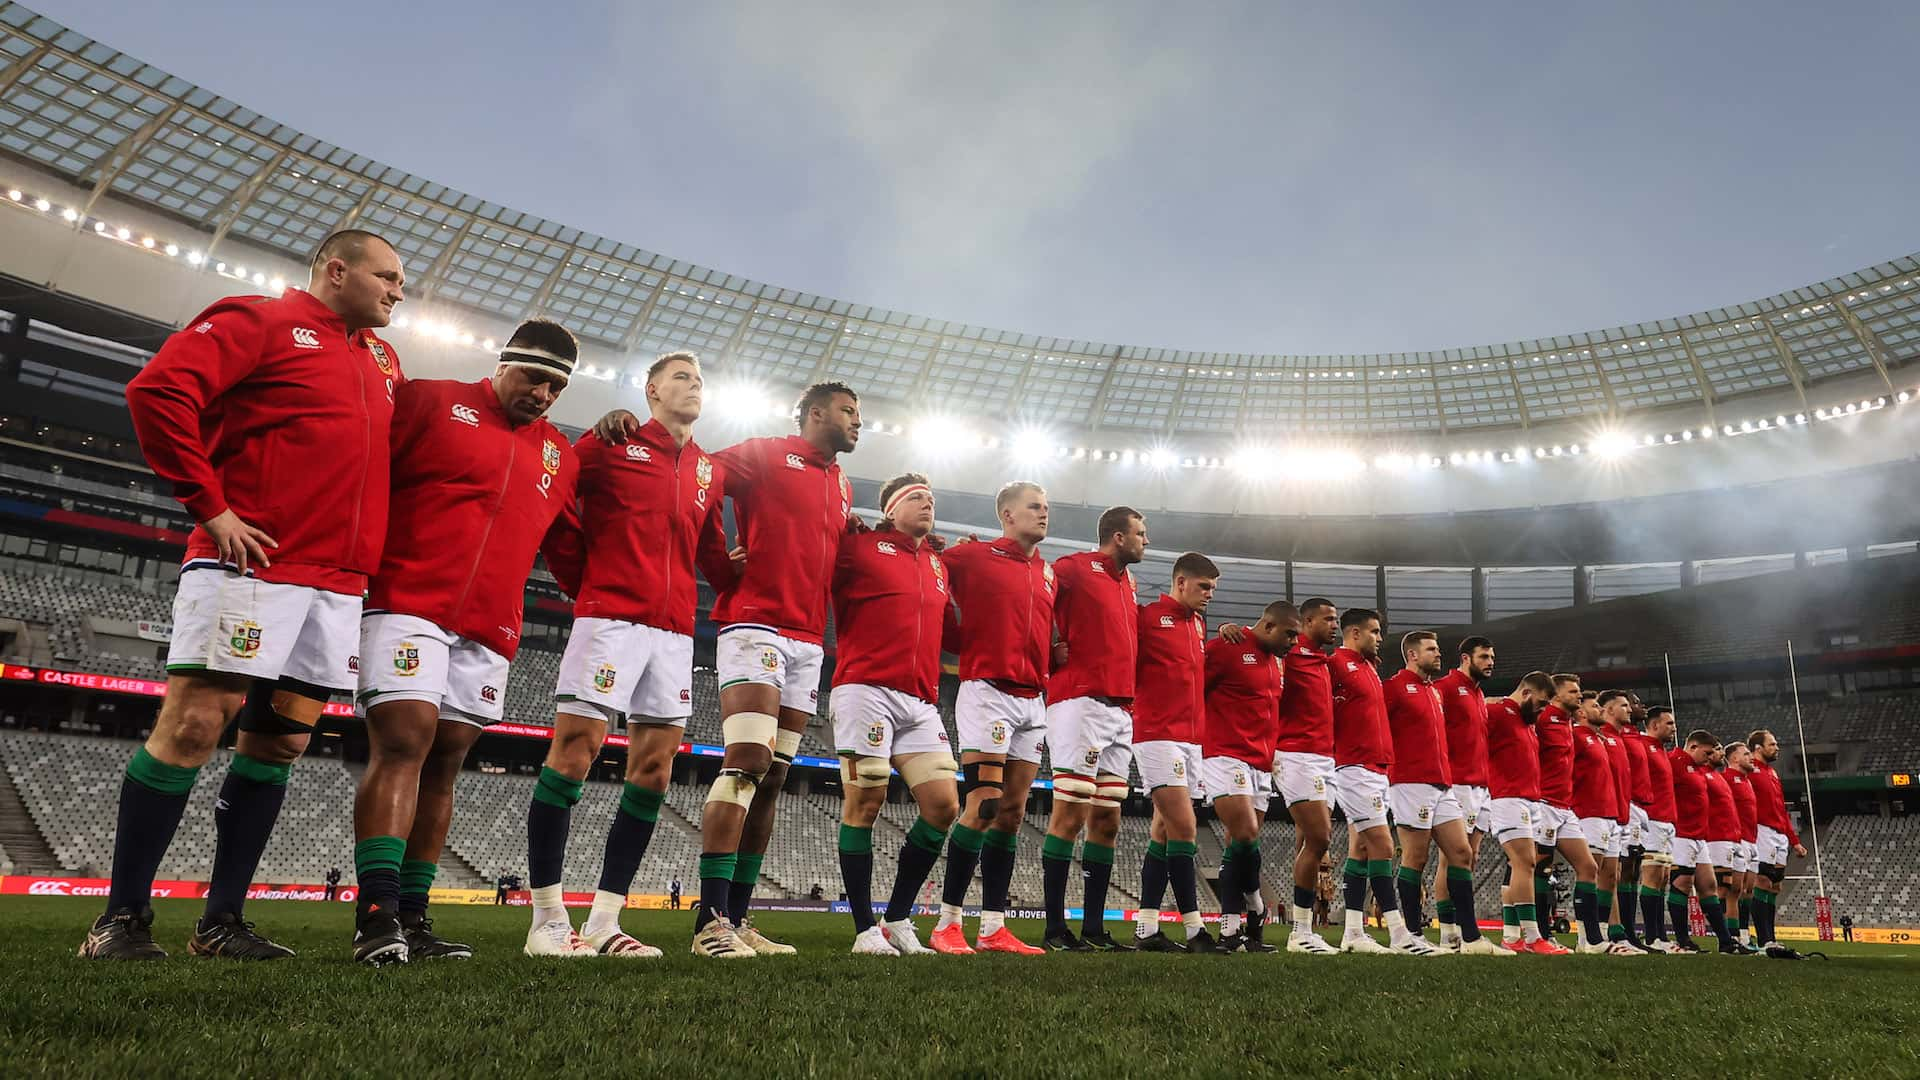 British and Irish Lion team line up for the National Anthem